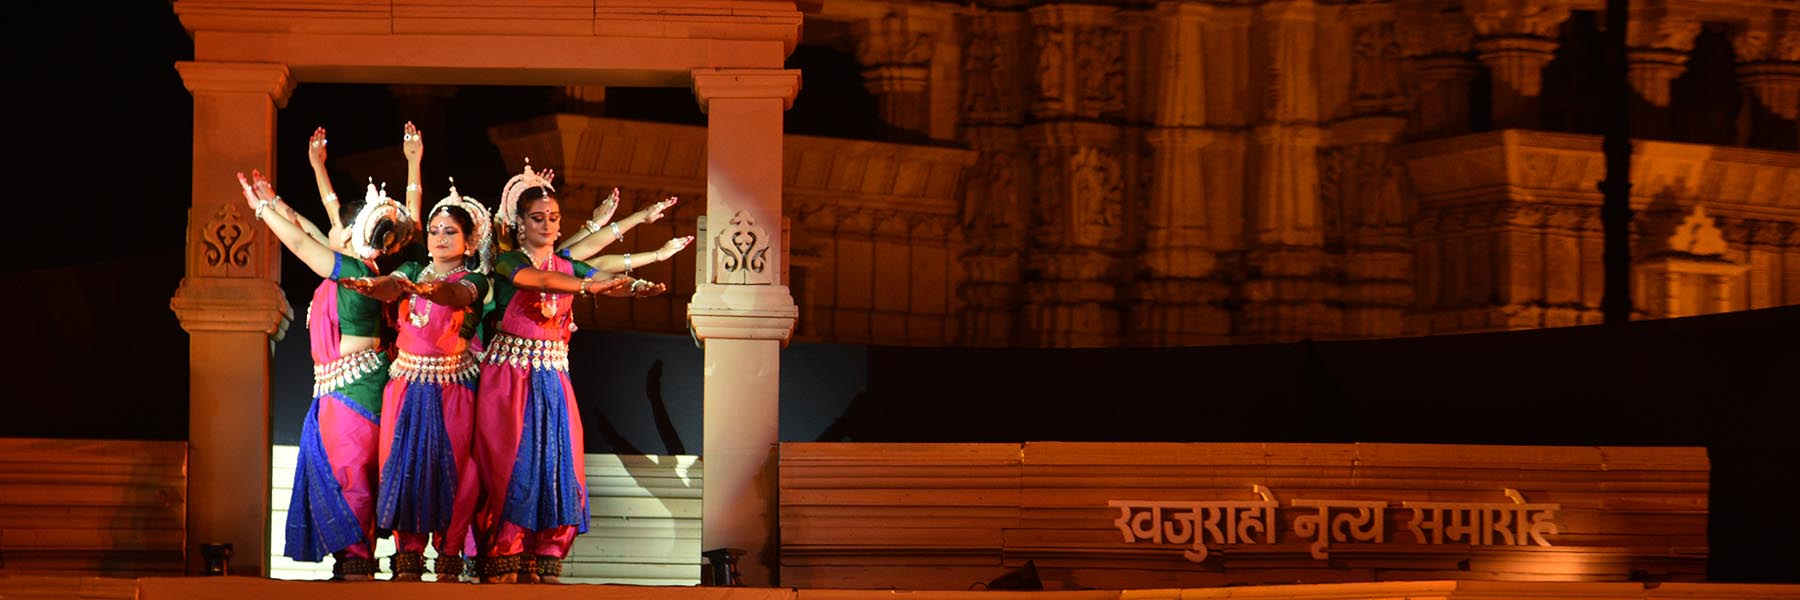 Classical India with Khajuraho dance festival